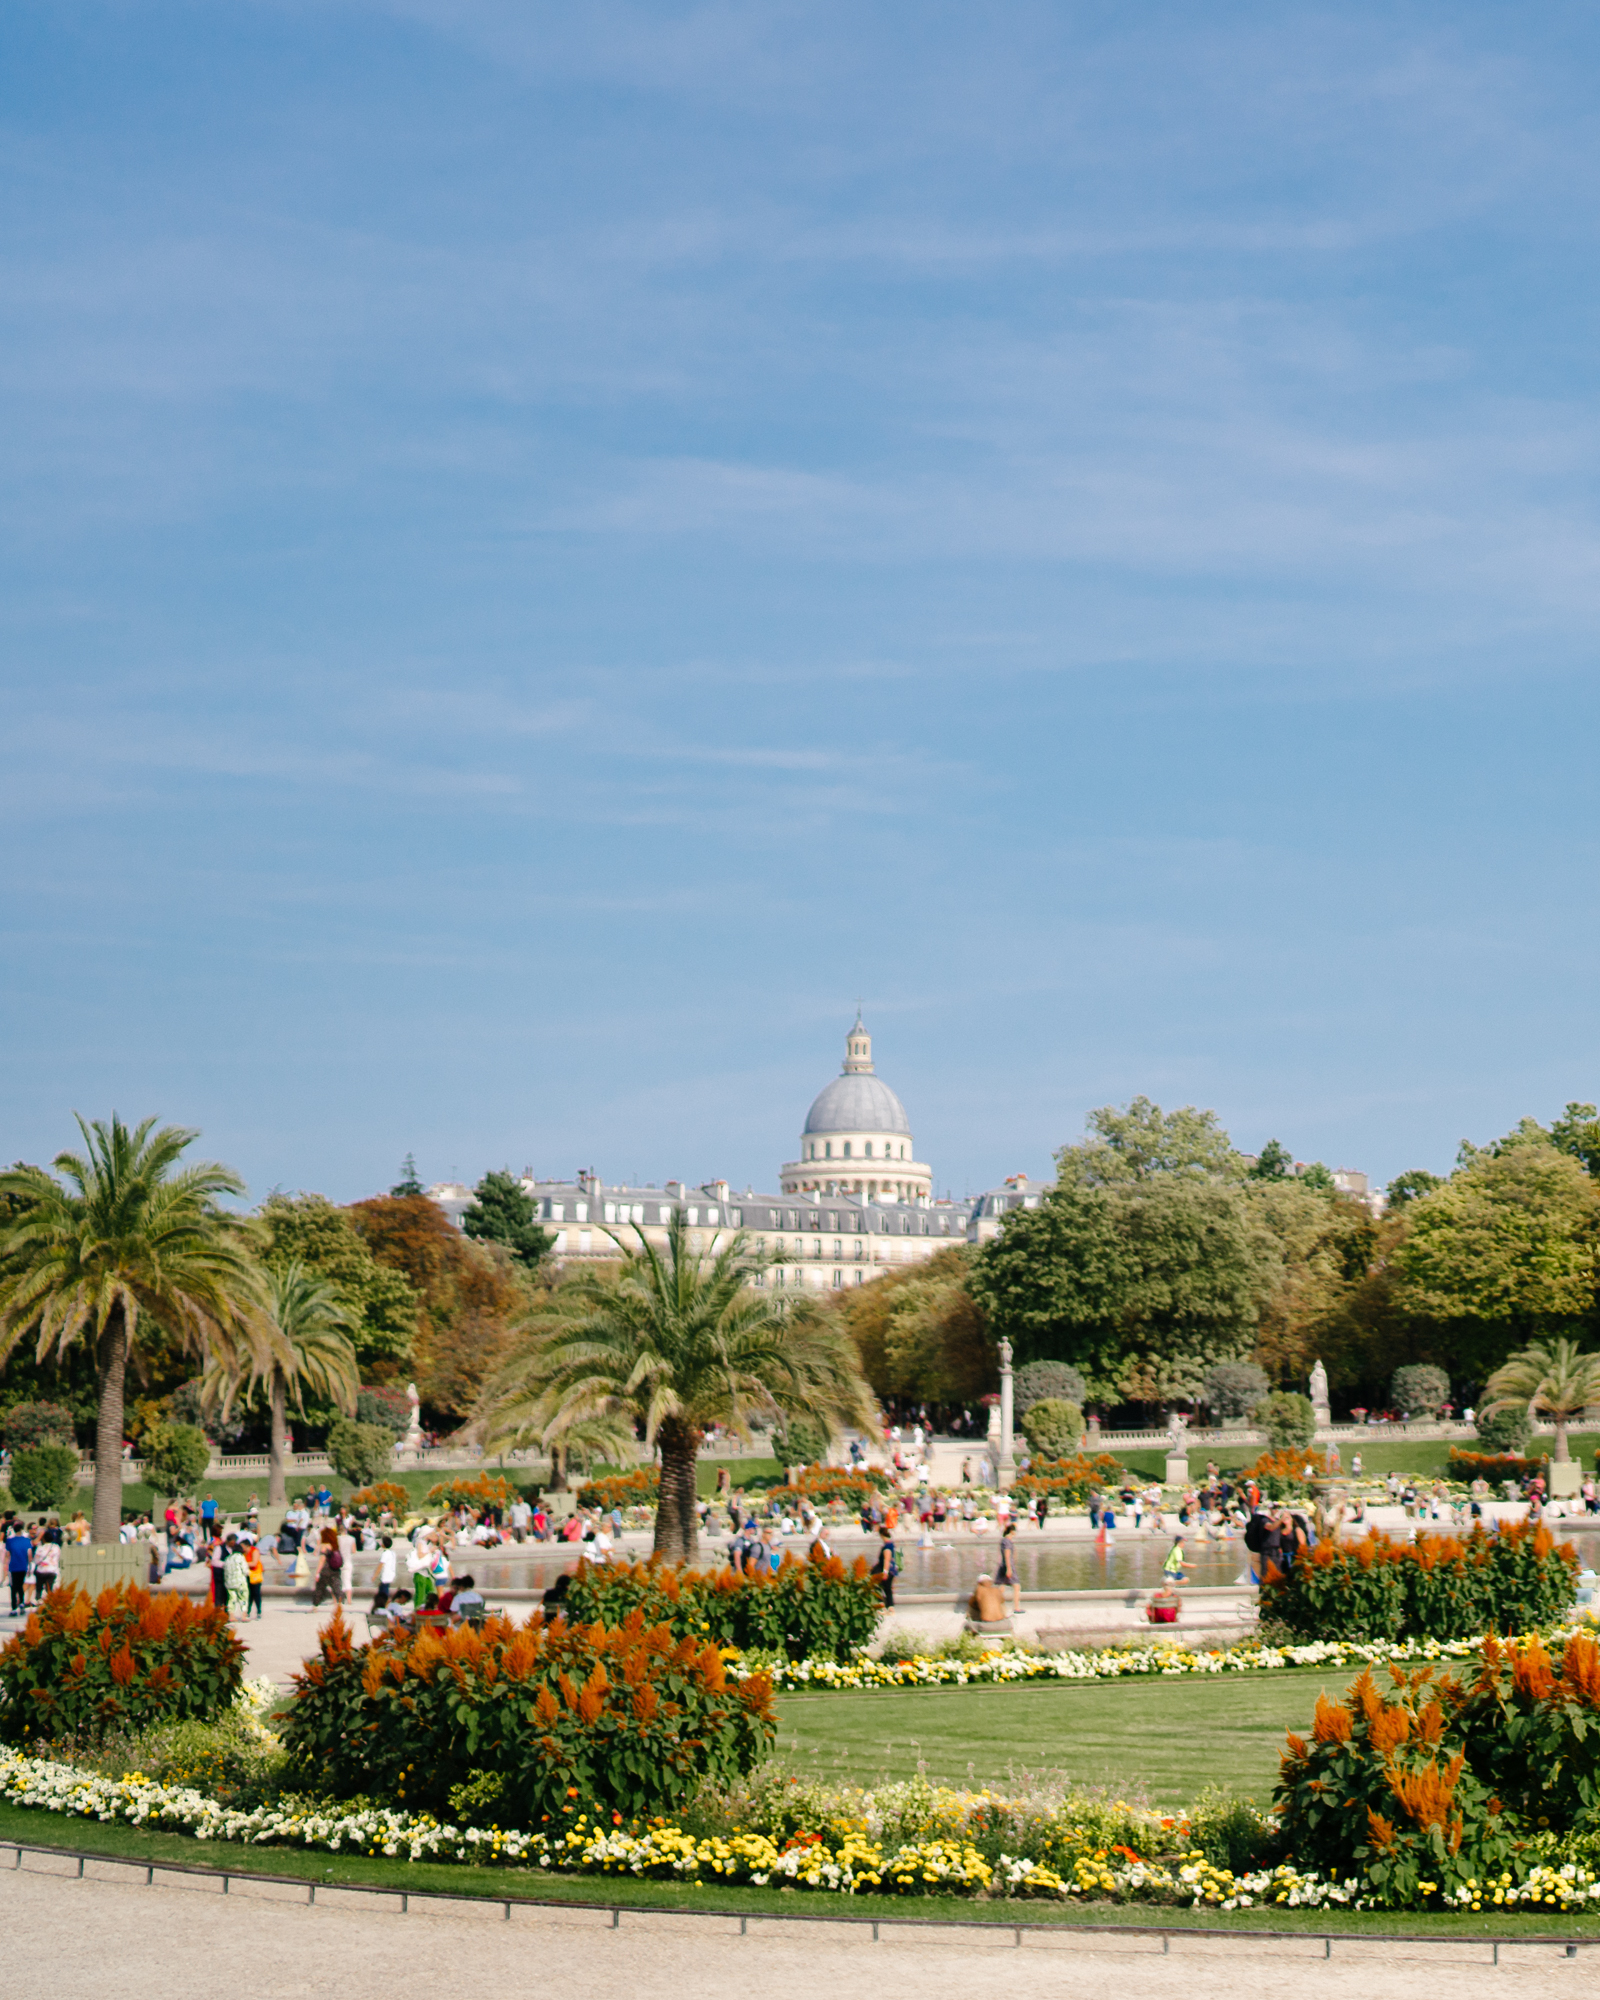 The Luxembourg Gardens in Paris